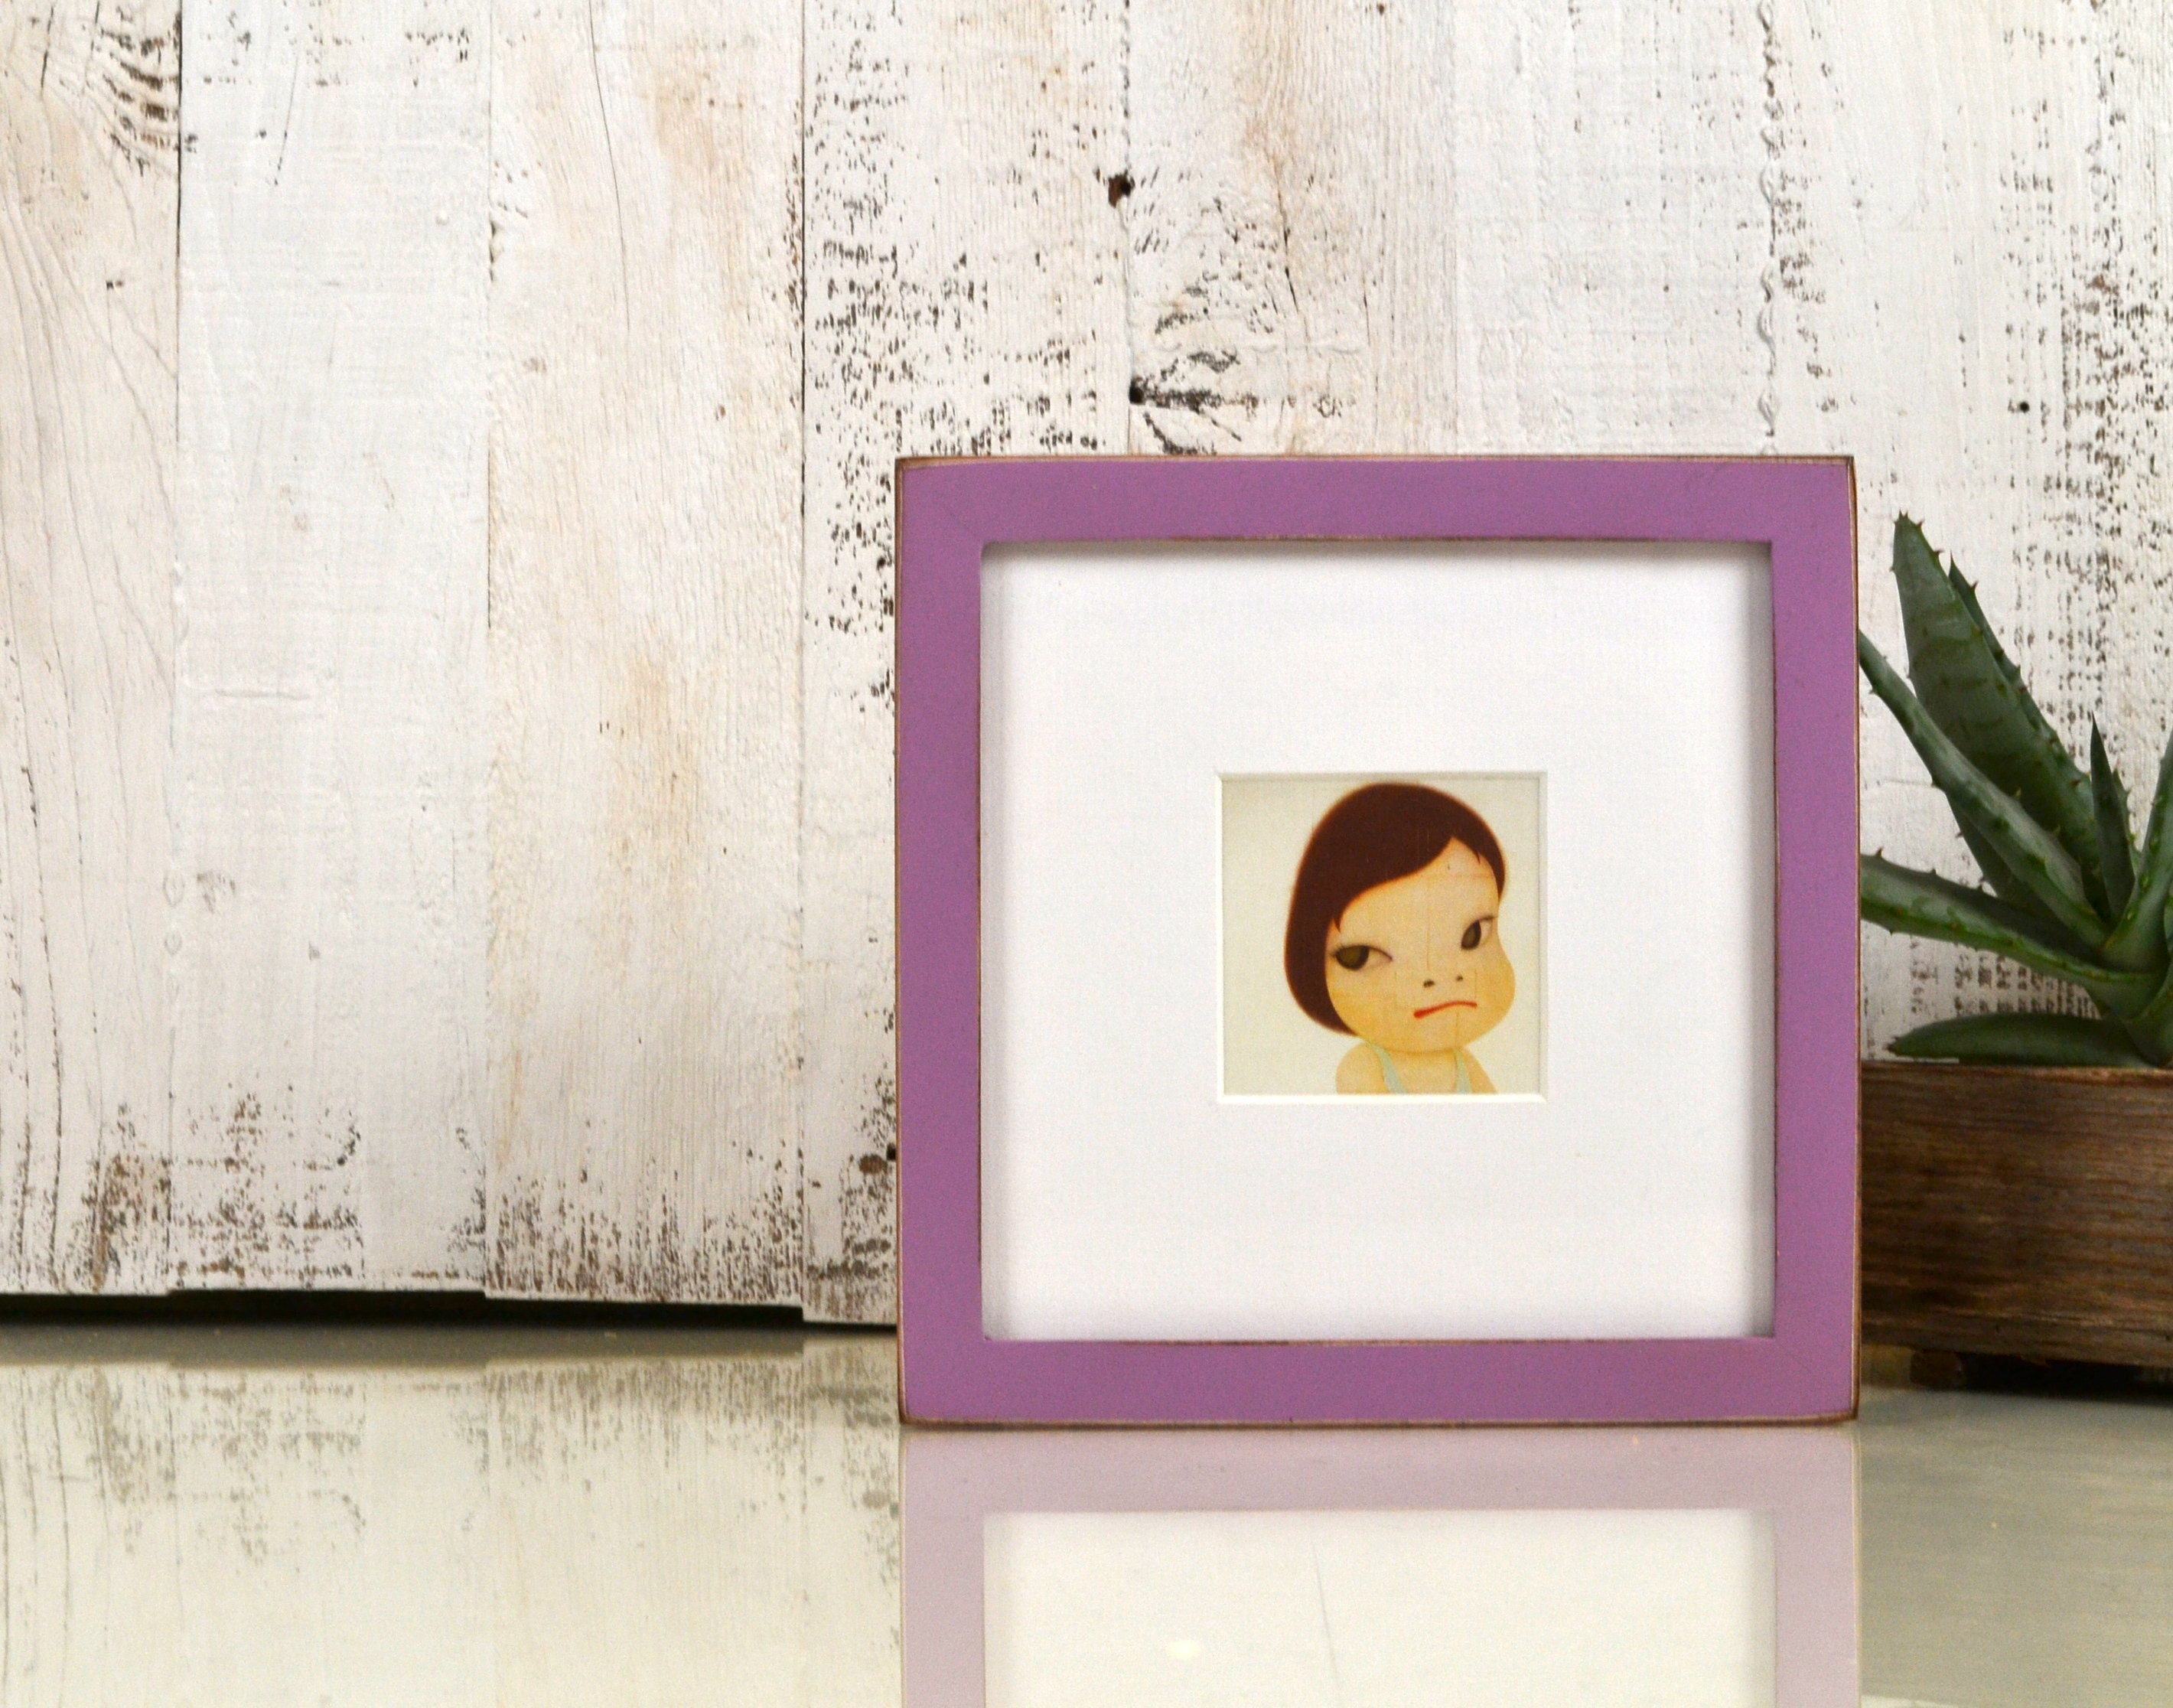 7x7 Square Picture Frame in Peewee Style with Vintage Violet Finish ...